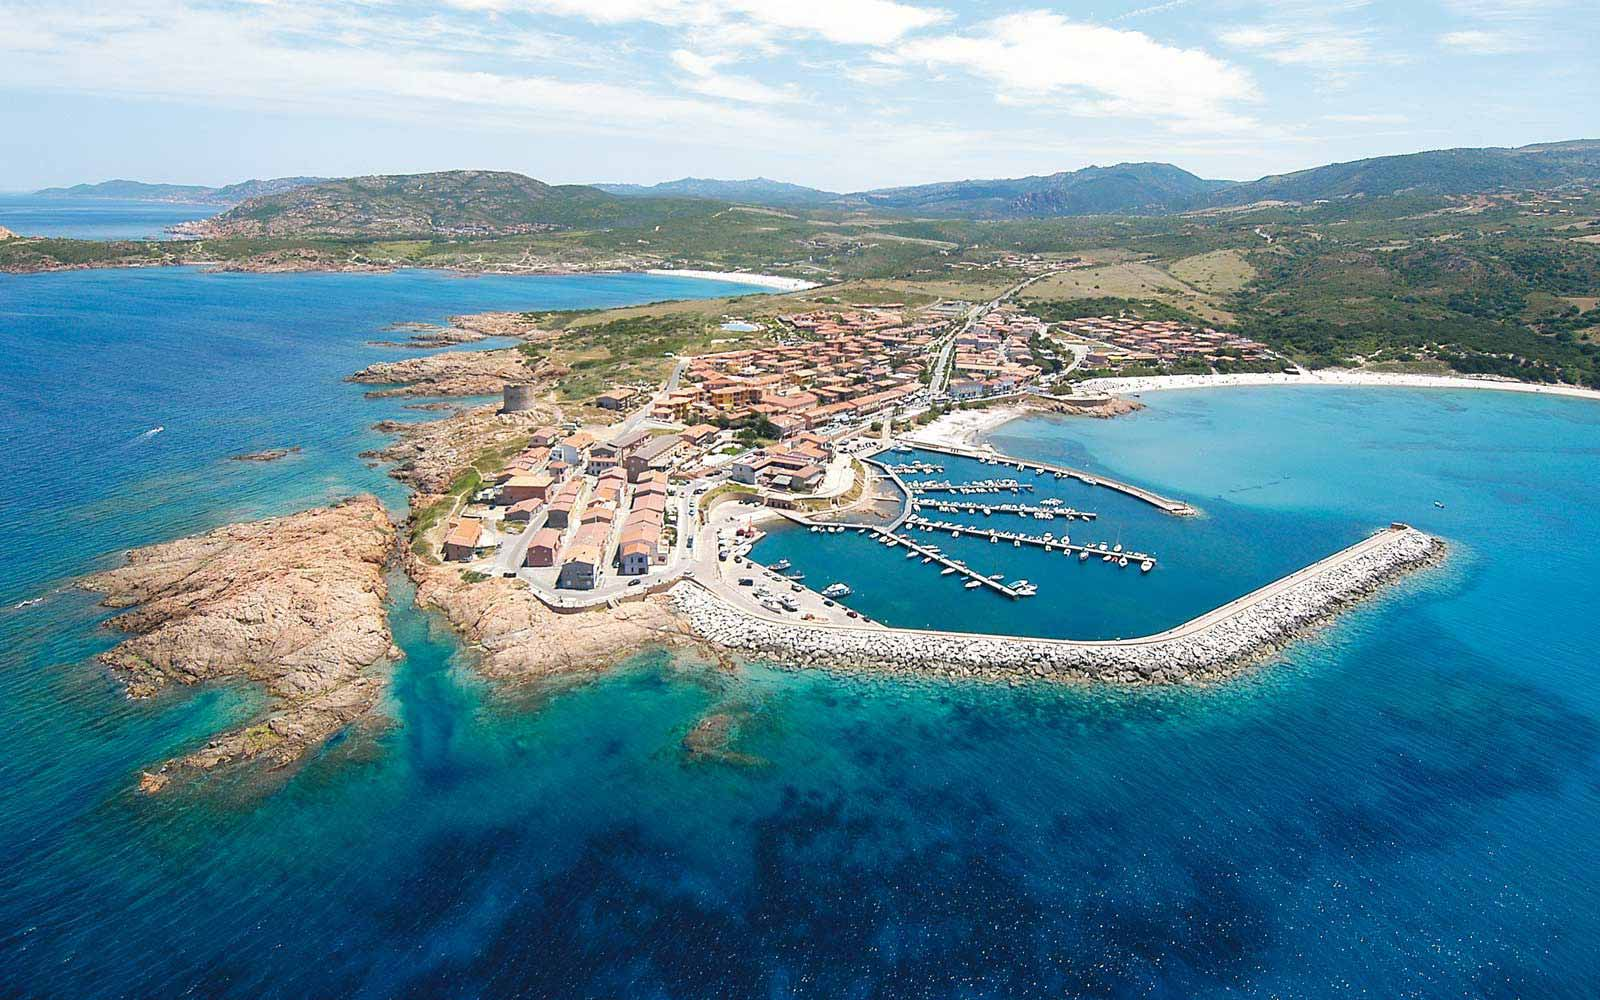 Aerial view over Hotel Relax Torreruja Thalasso & Spa